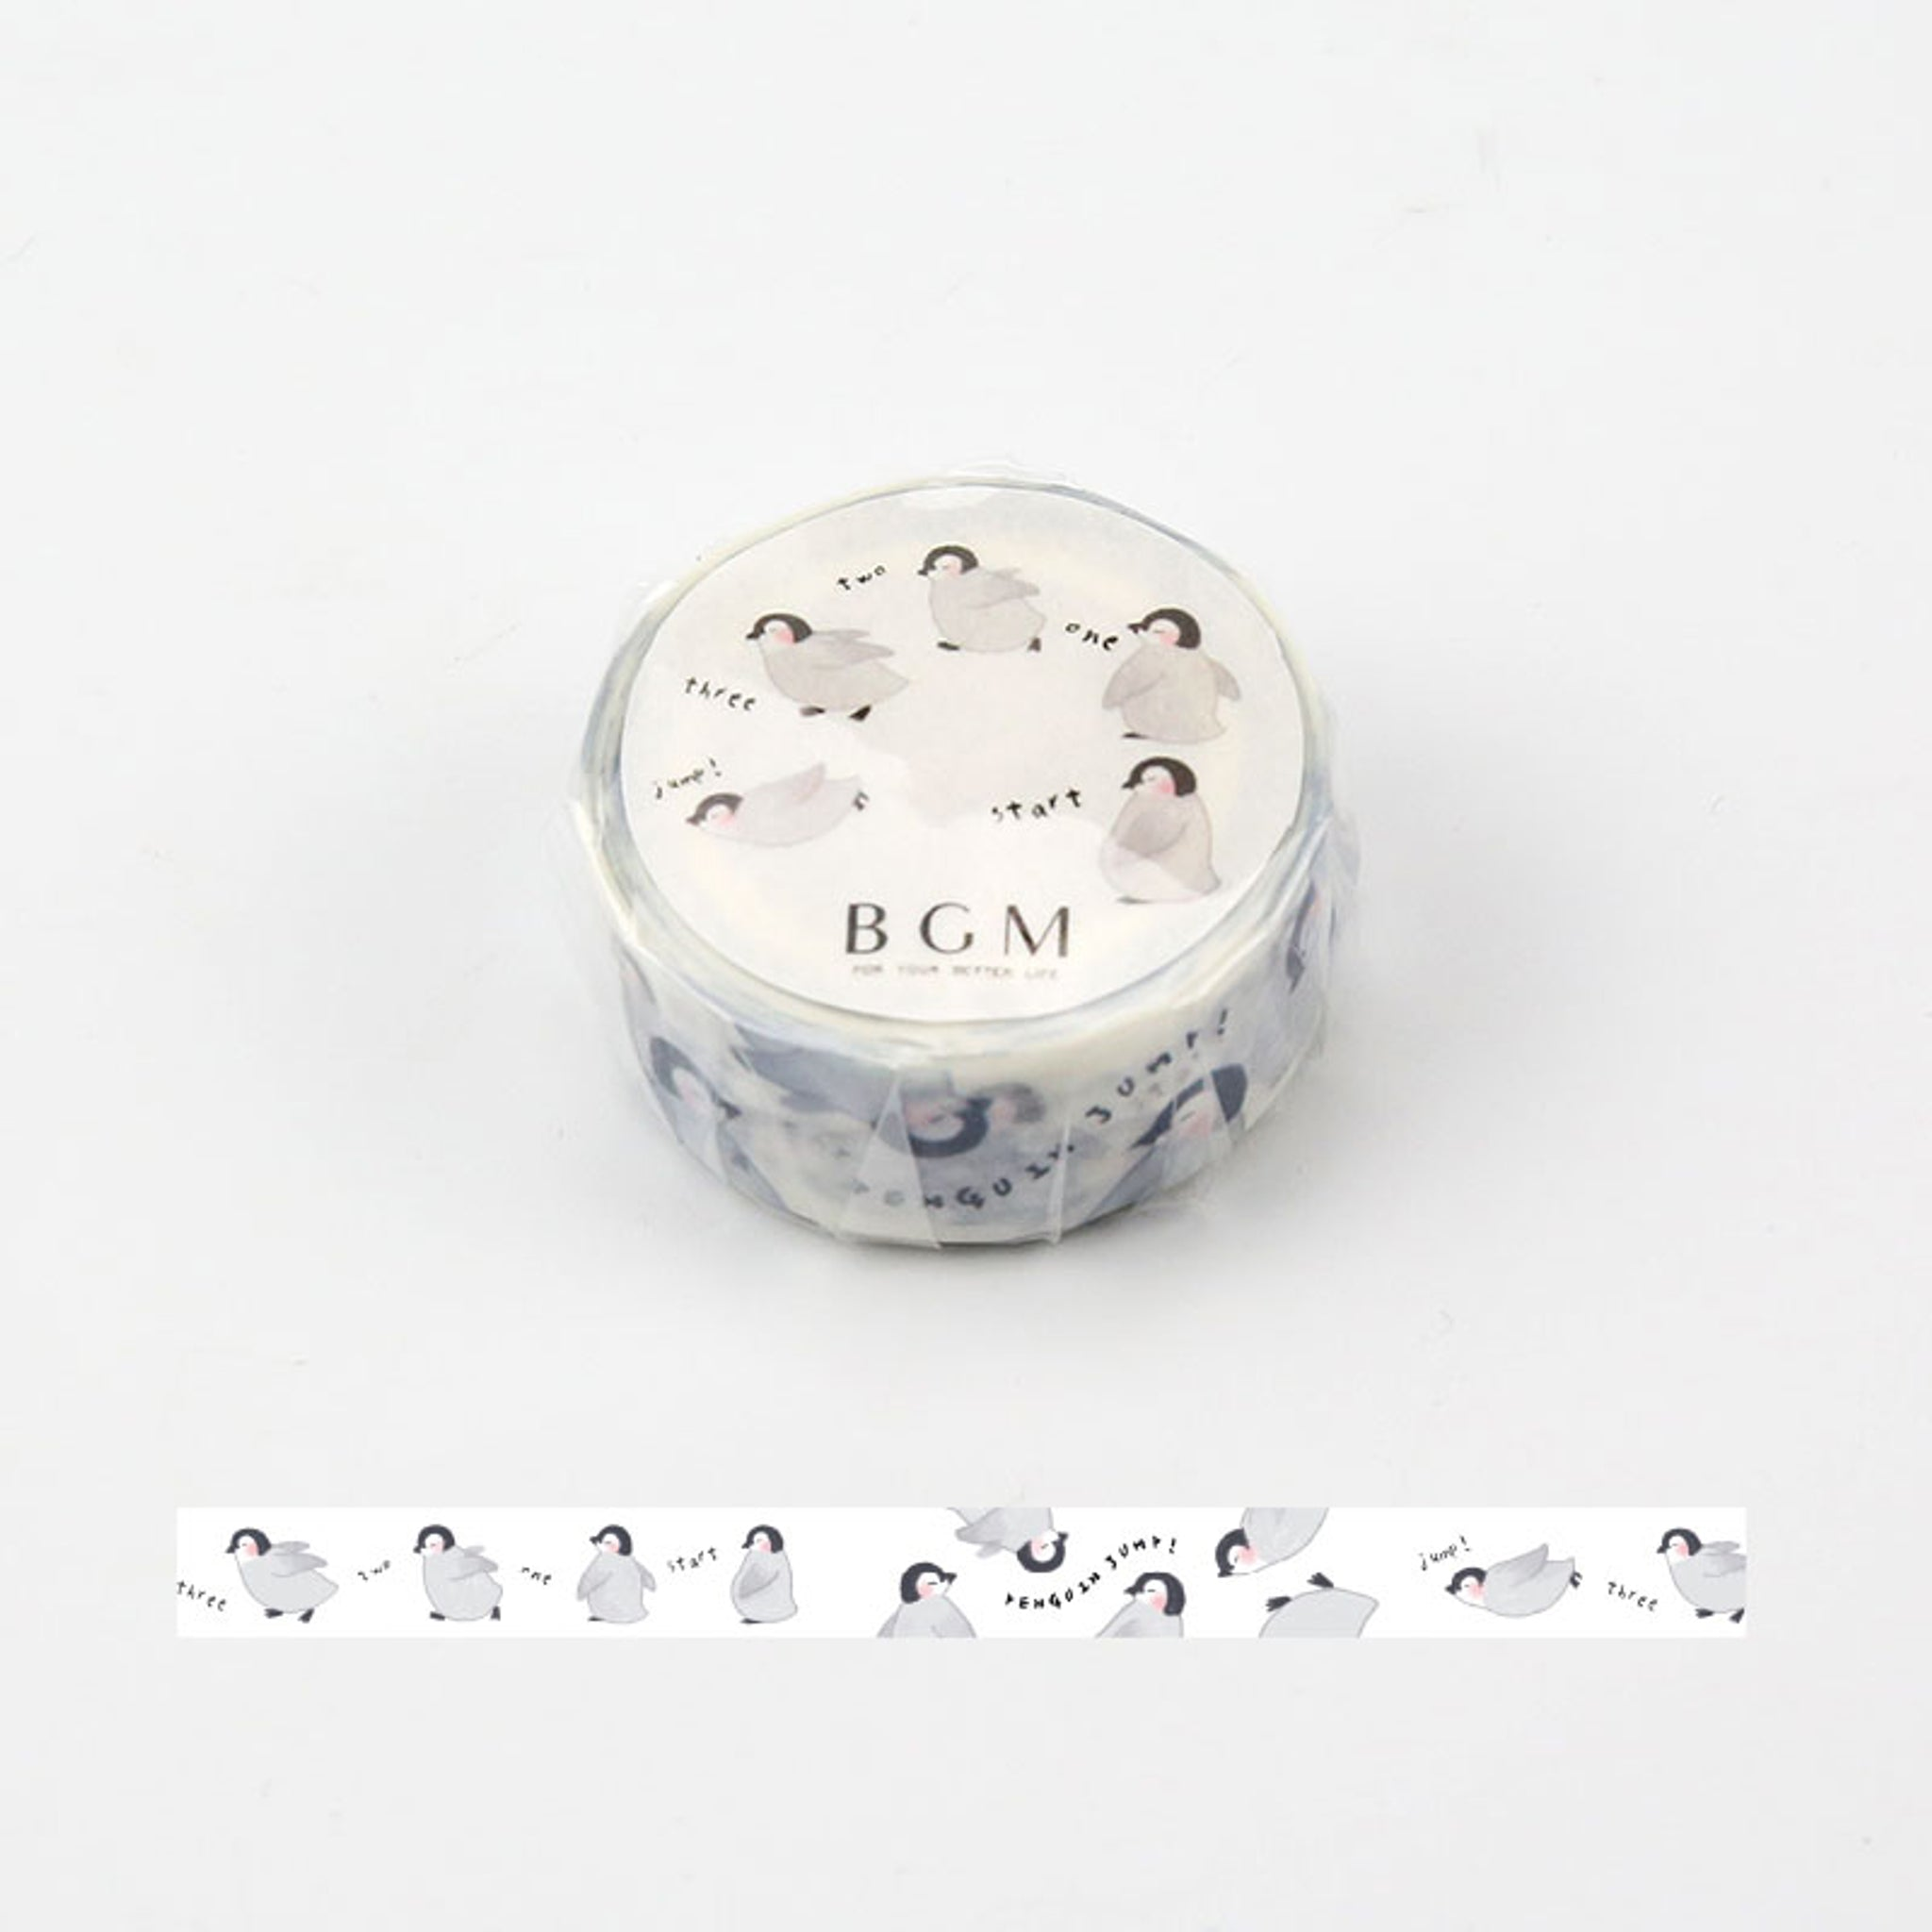 BGM Penguin Washi Tape